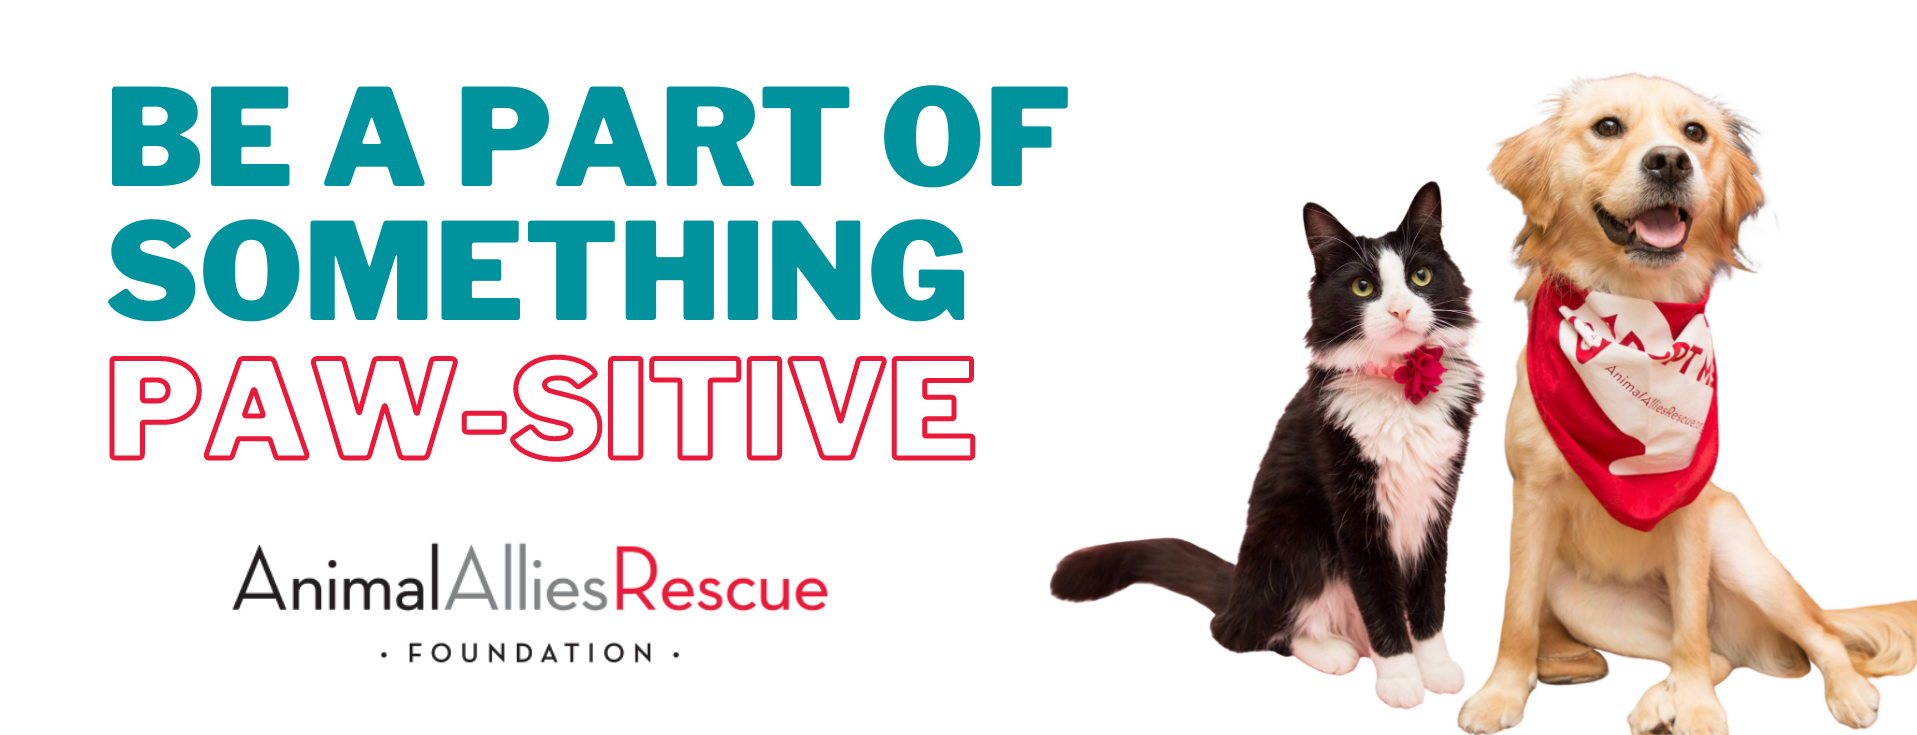 Be a Part of Something Paw-sitive - Animal Allies Rescue Foundation